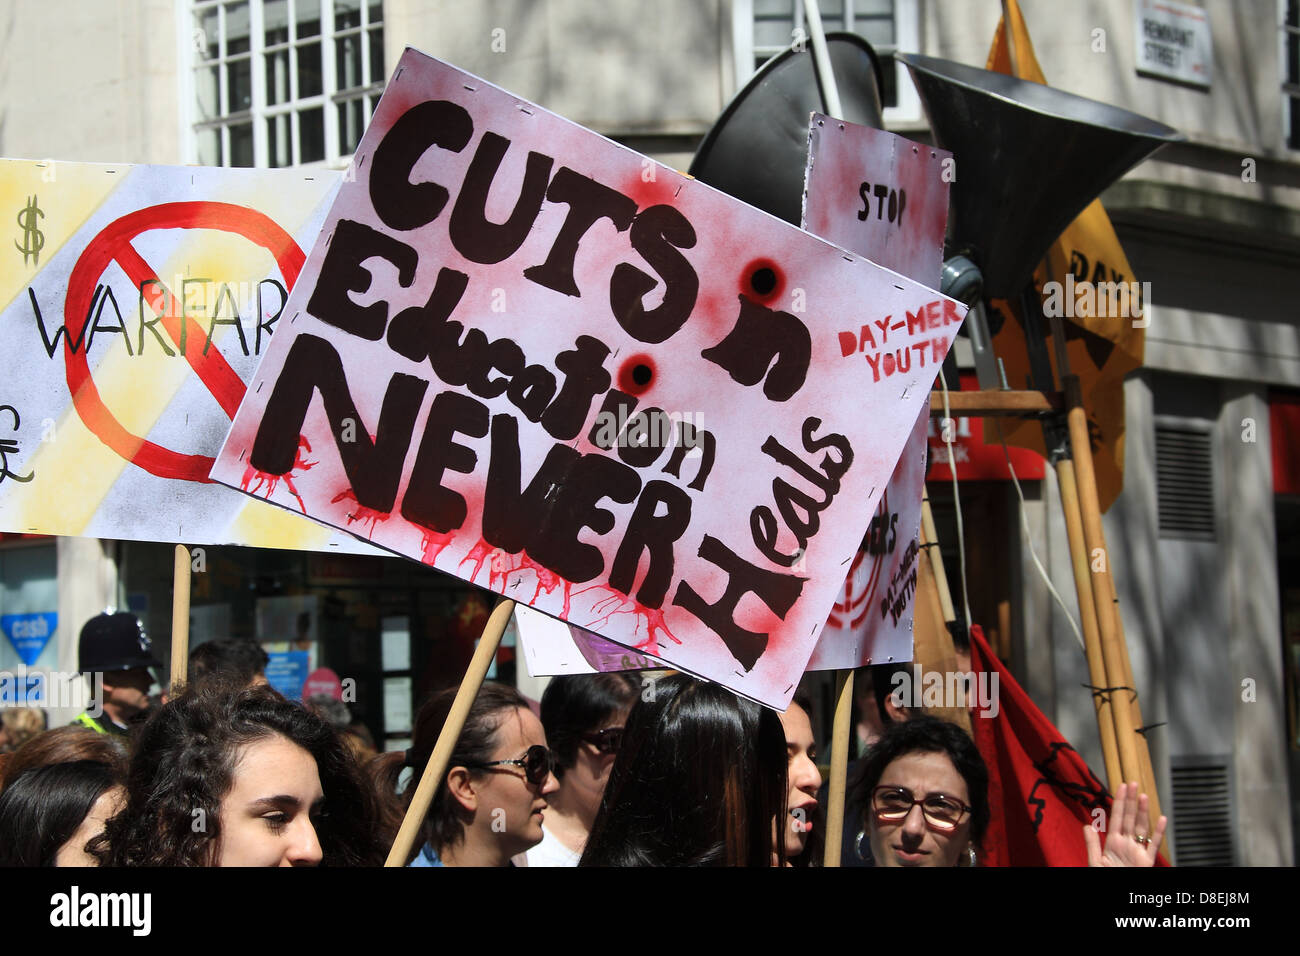 Anti education cuts placard at the May Day rally in central London 2013 - Stock Image